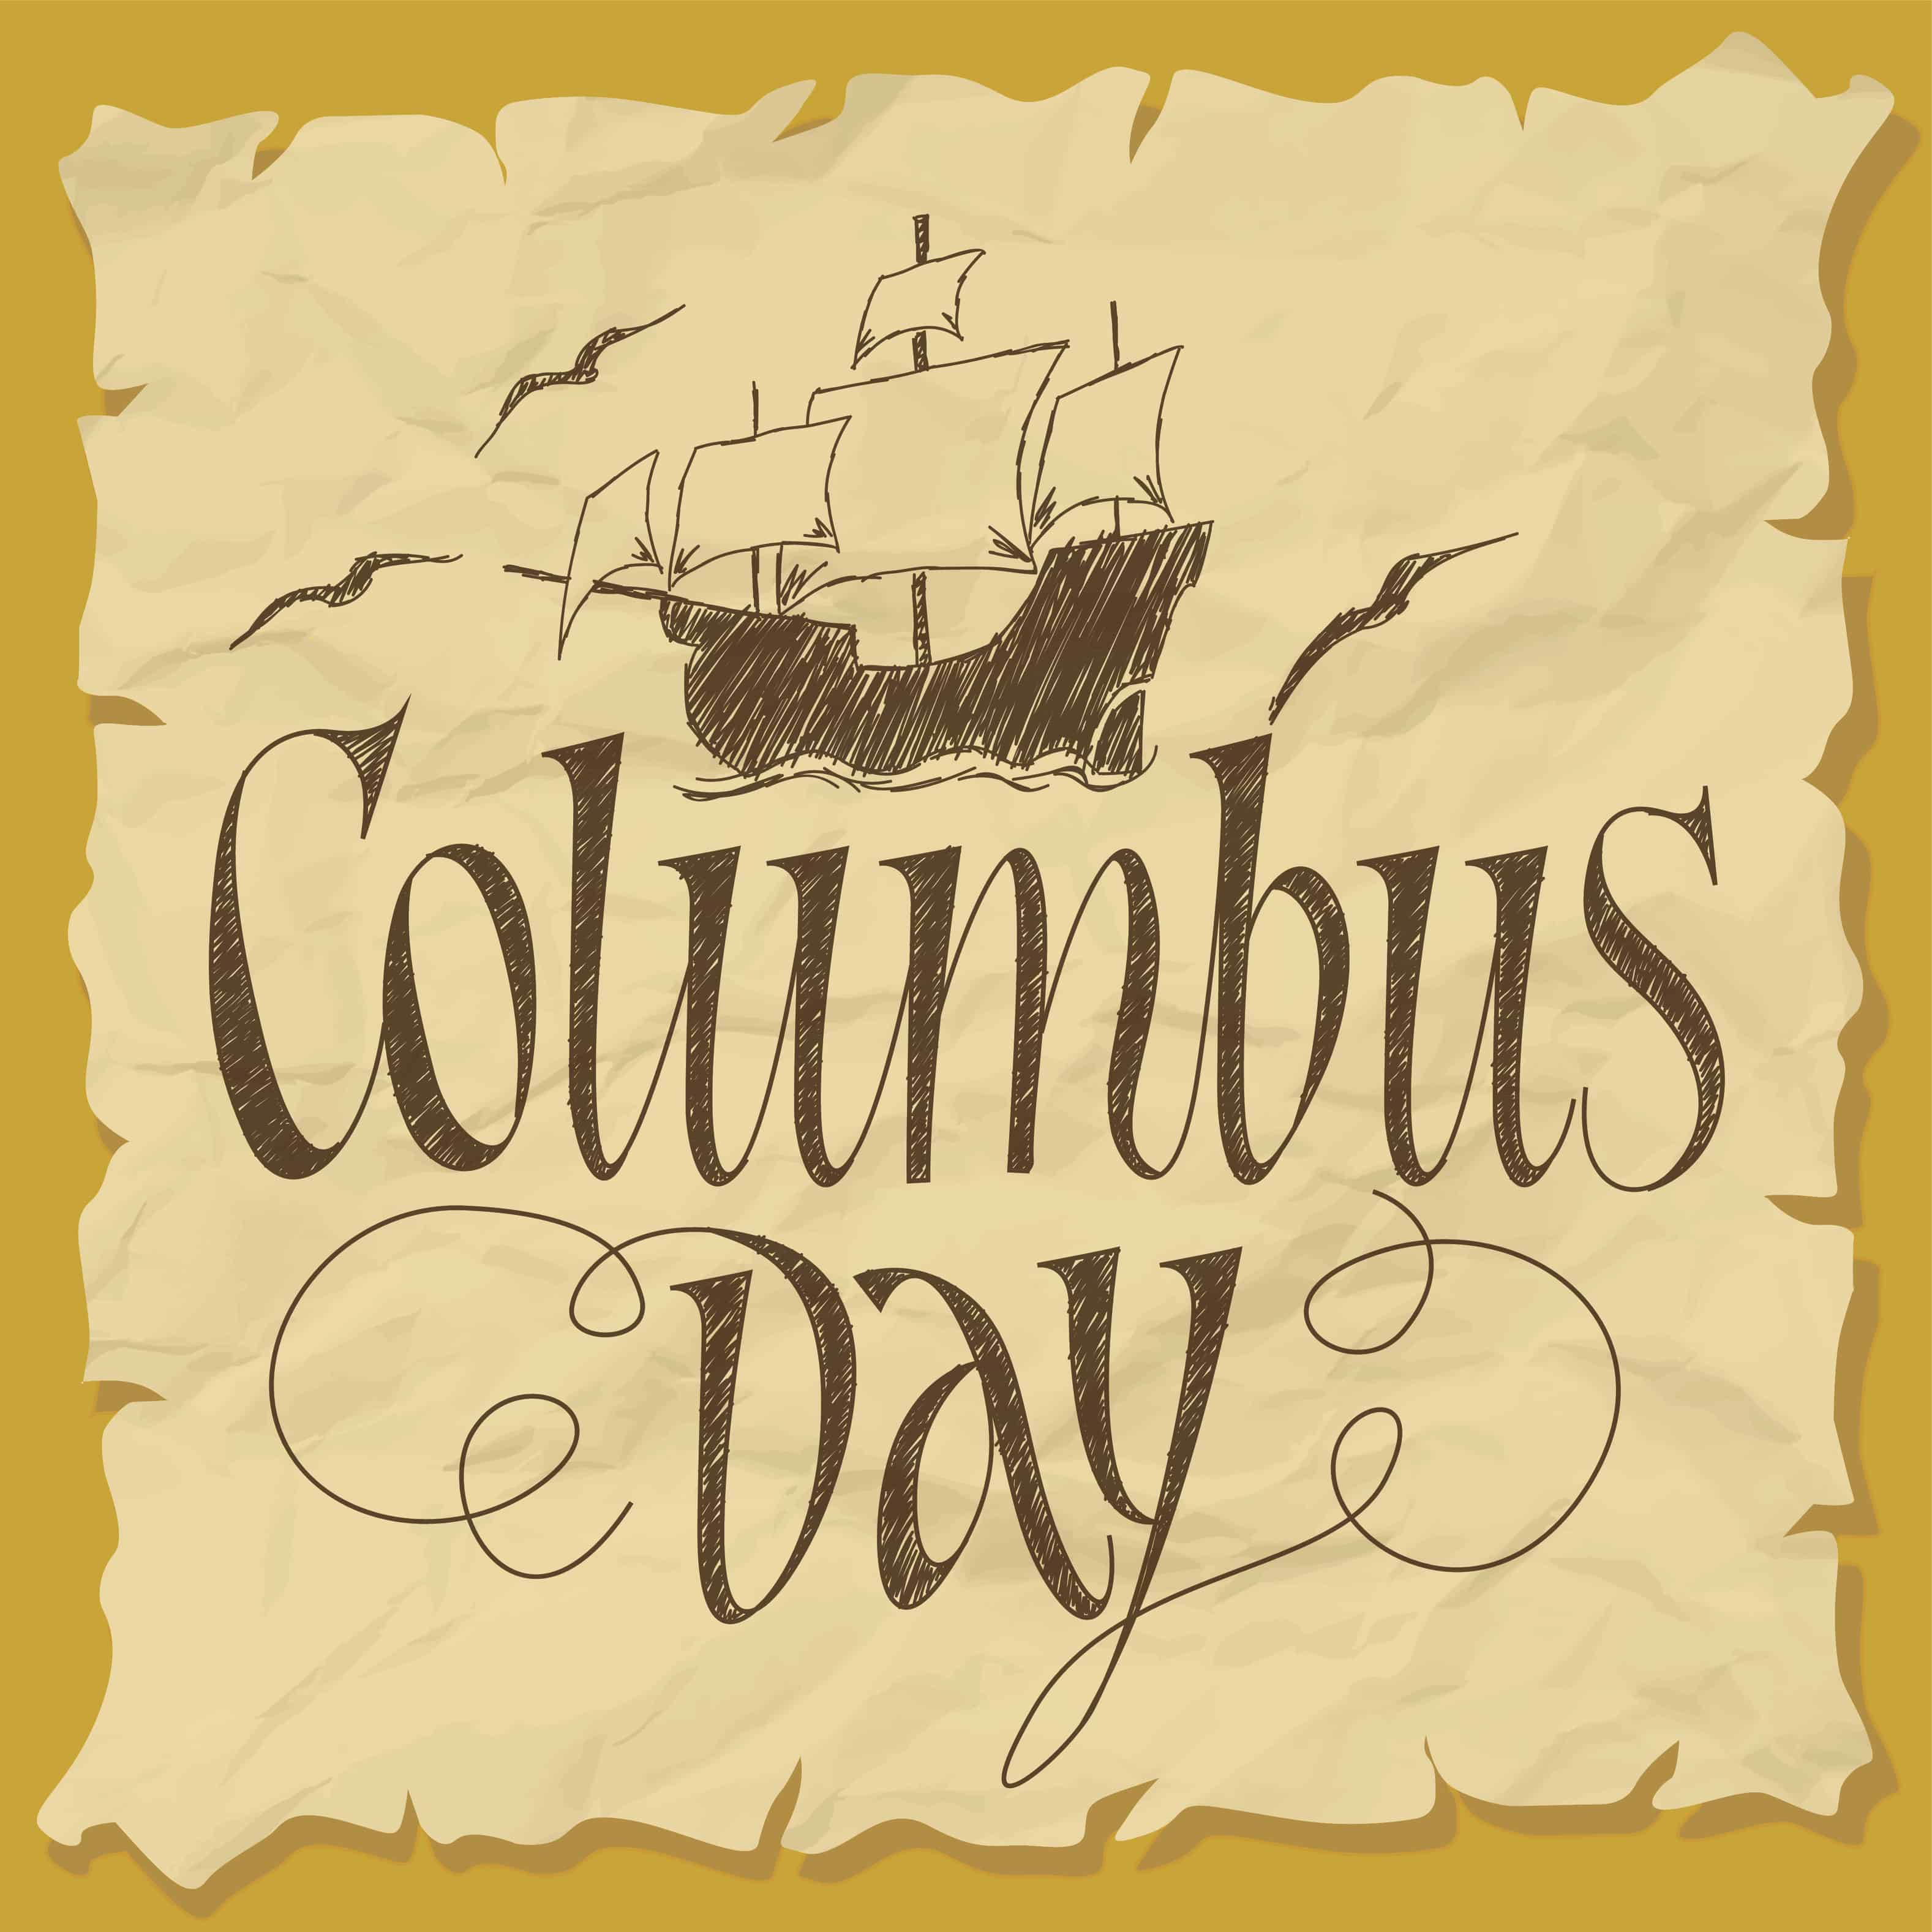 Columbus Tours Event Business